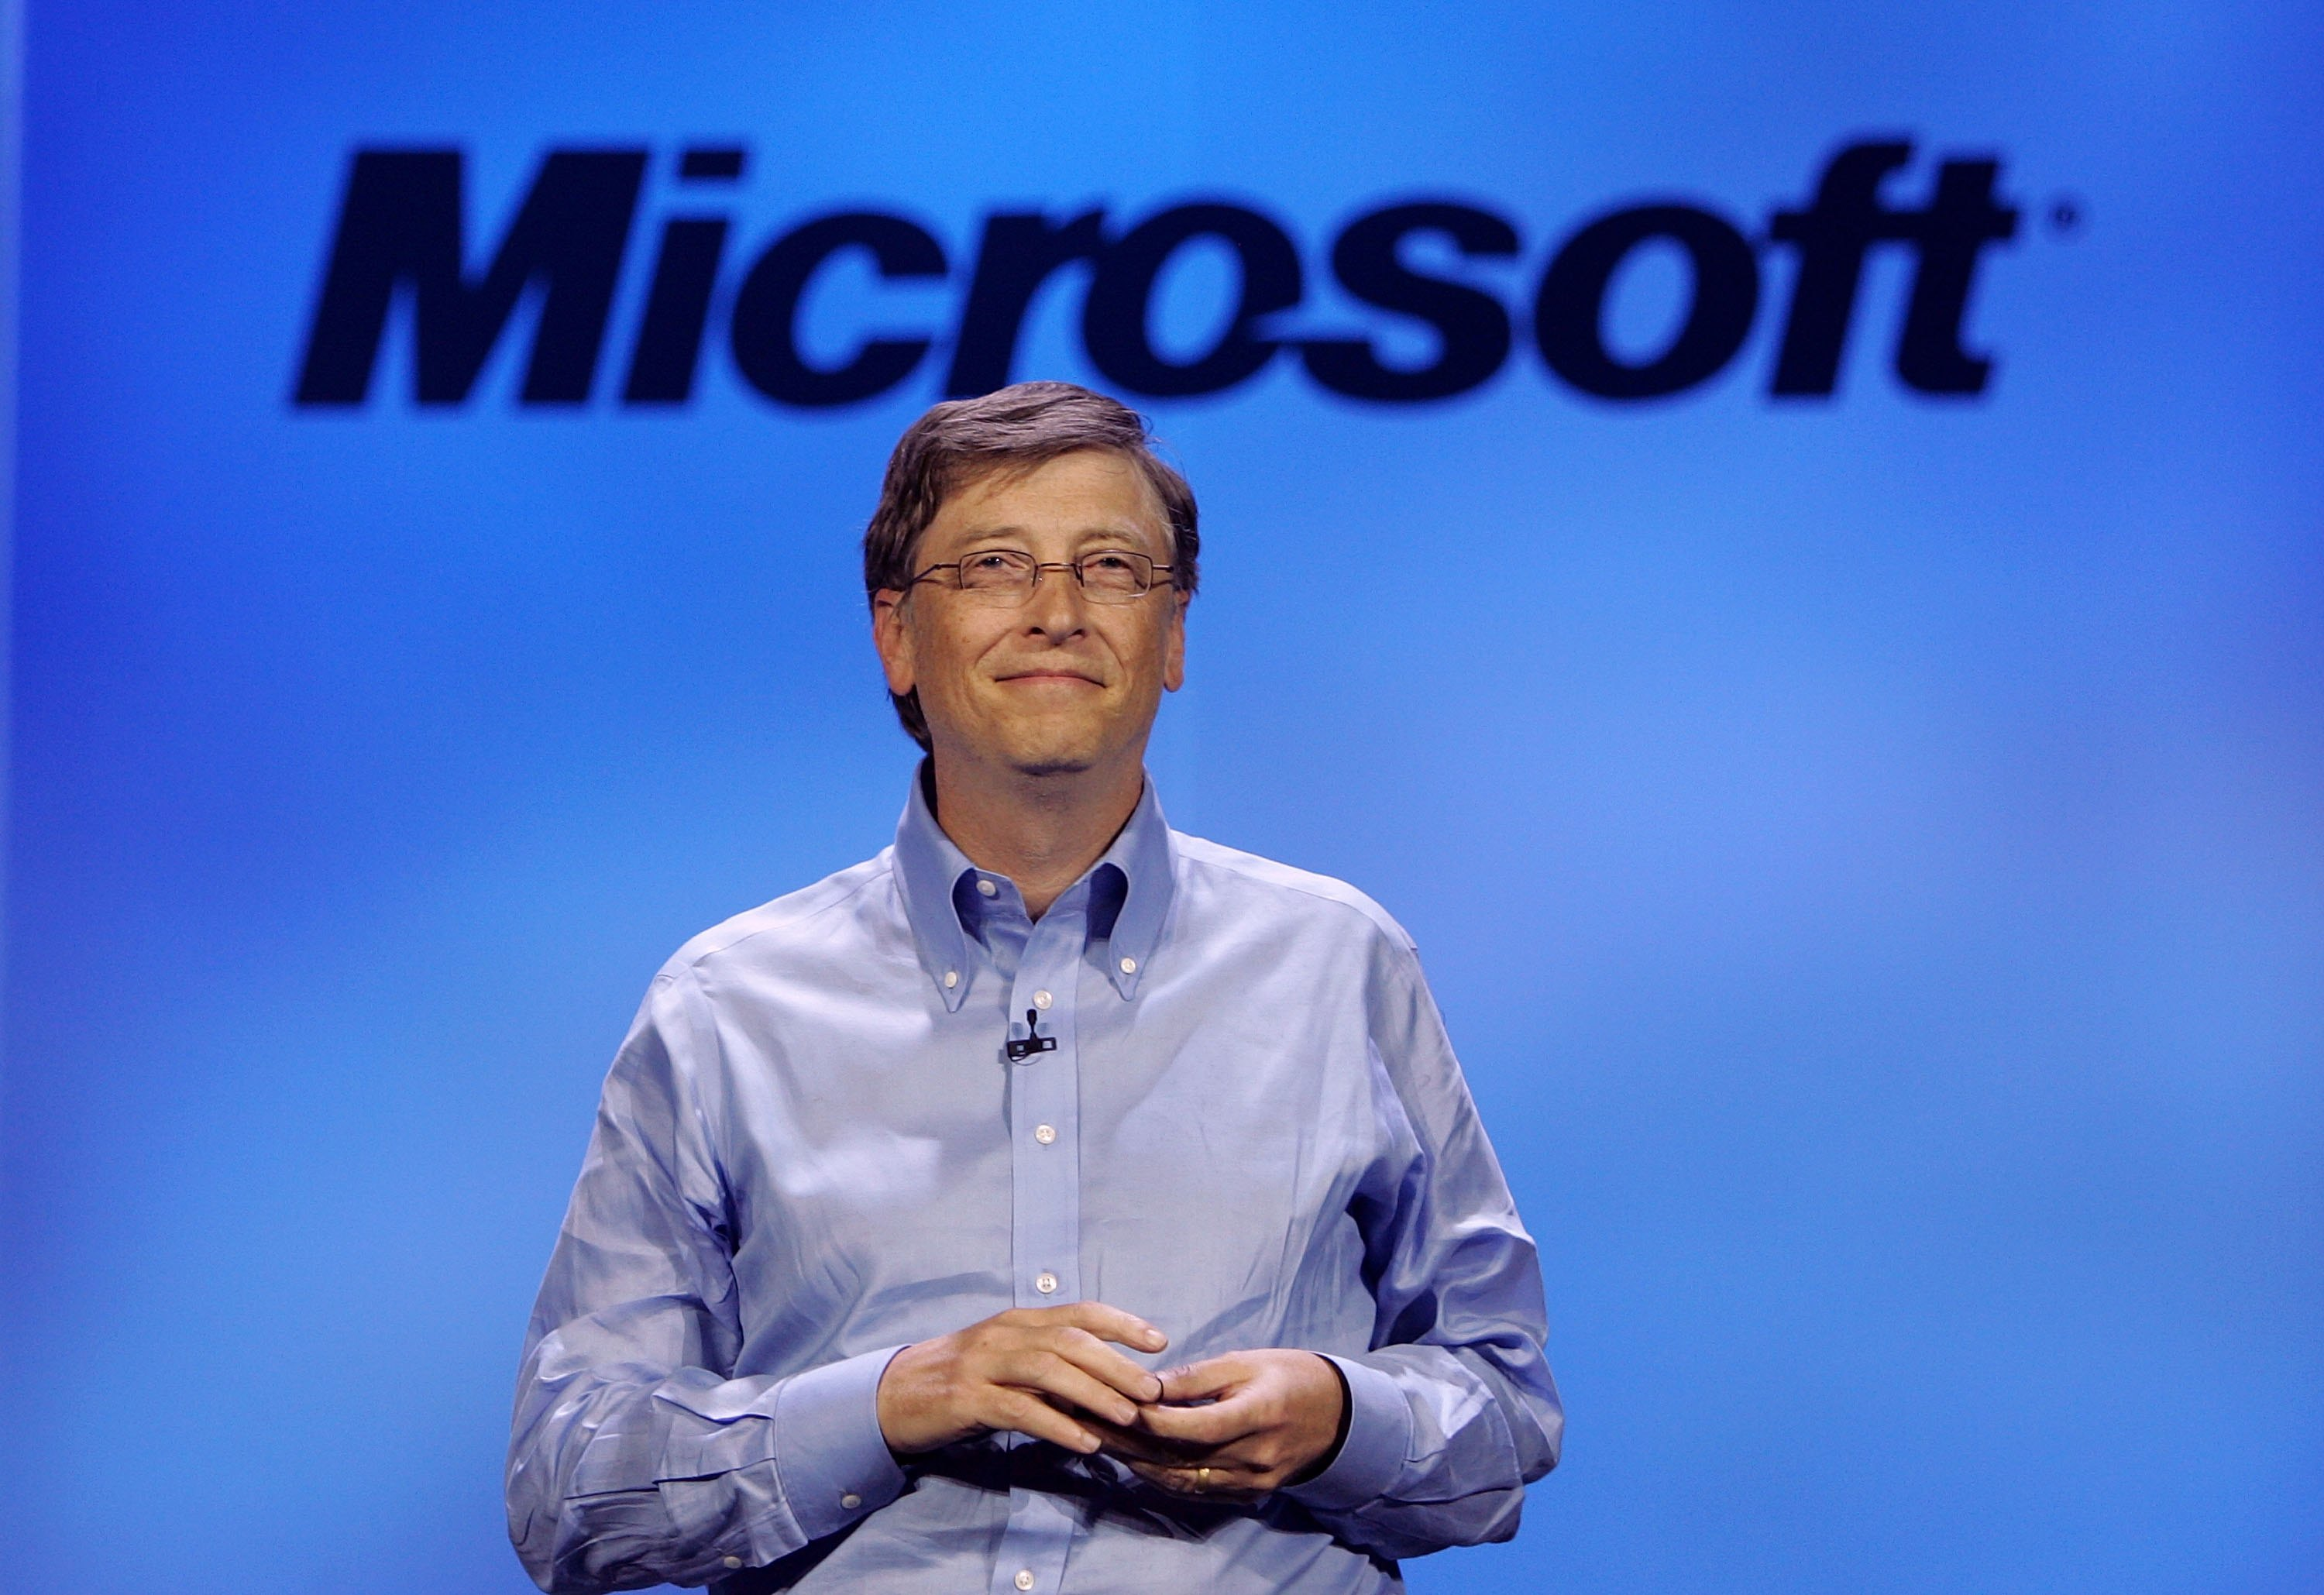 Microsoft chairman Bill Gates delivers a keynote address at the 40th annual Consumer Electronics Show (CES) convention January 7, 2007 in Las Vegas, Nevada.